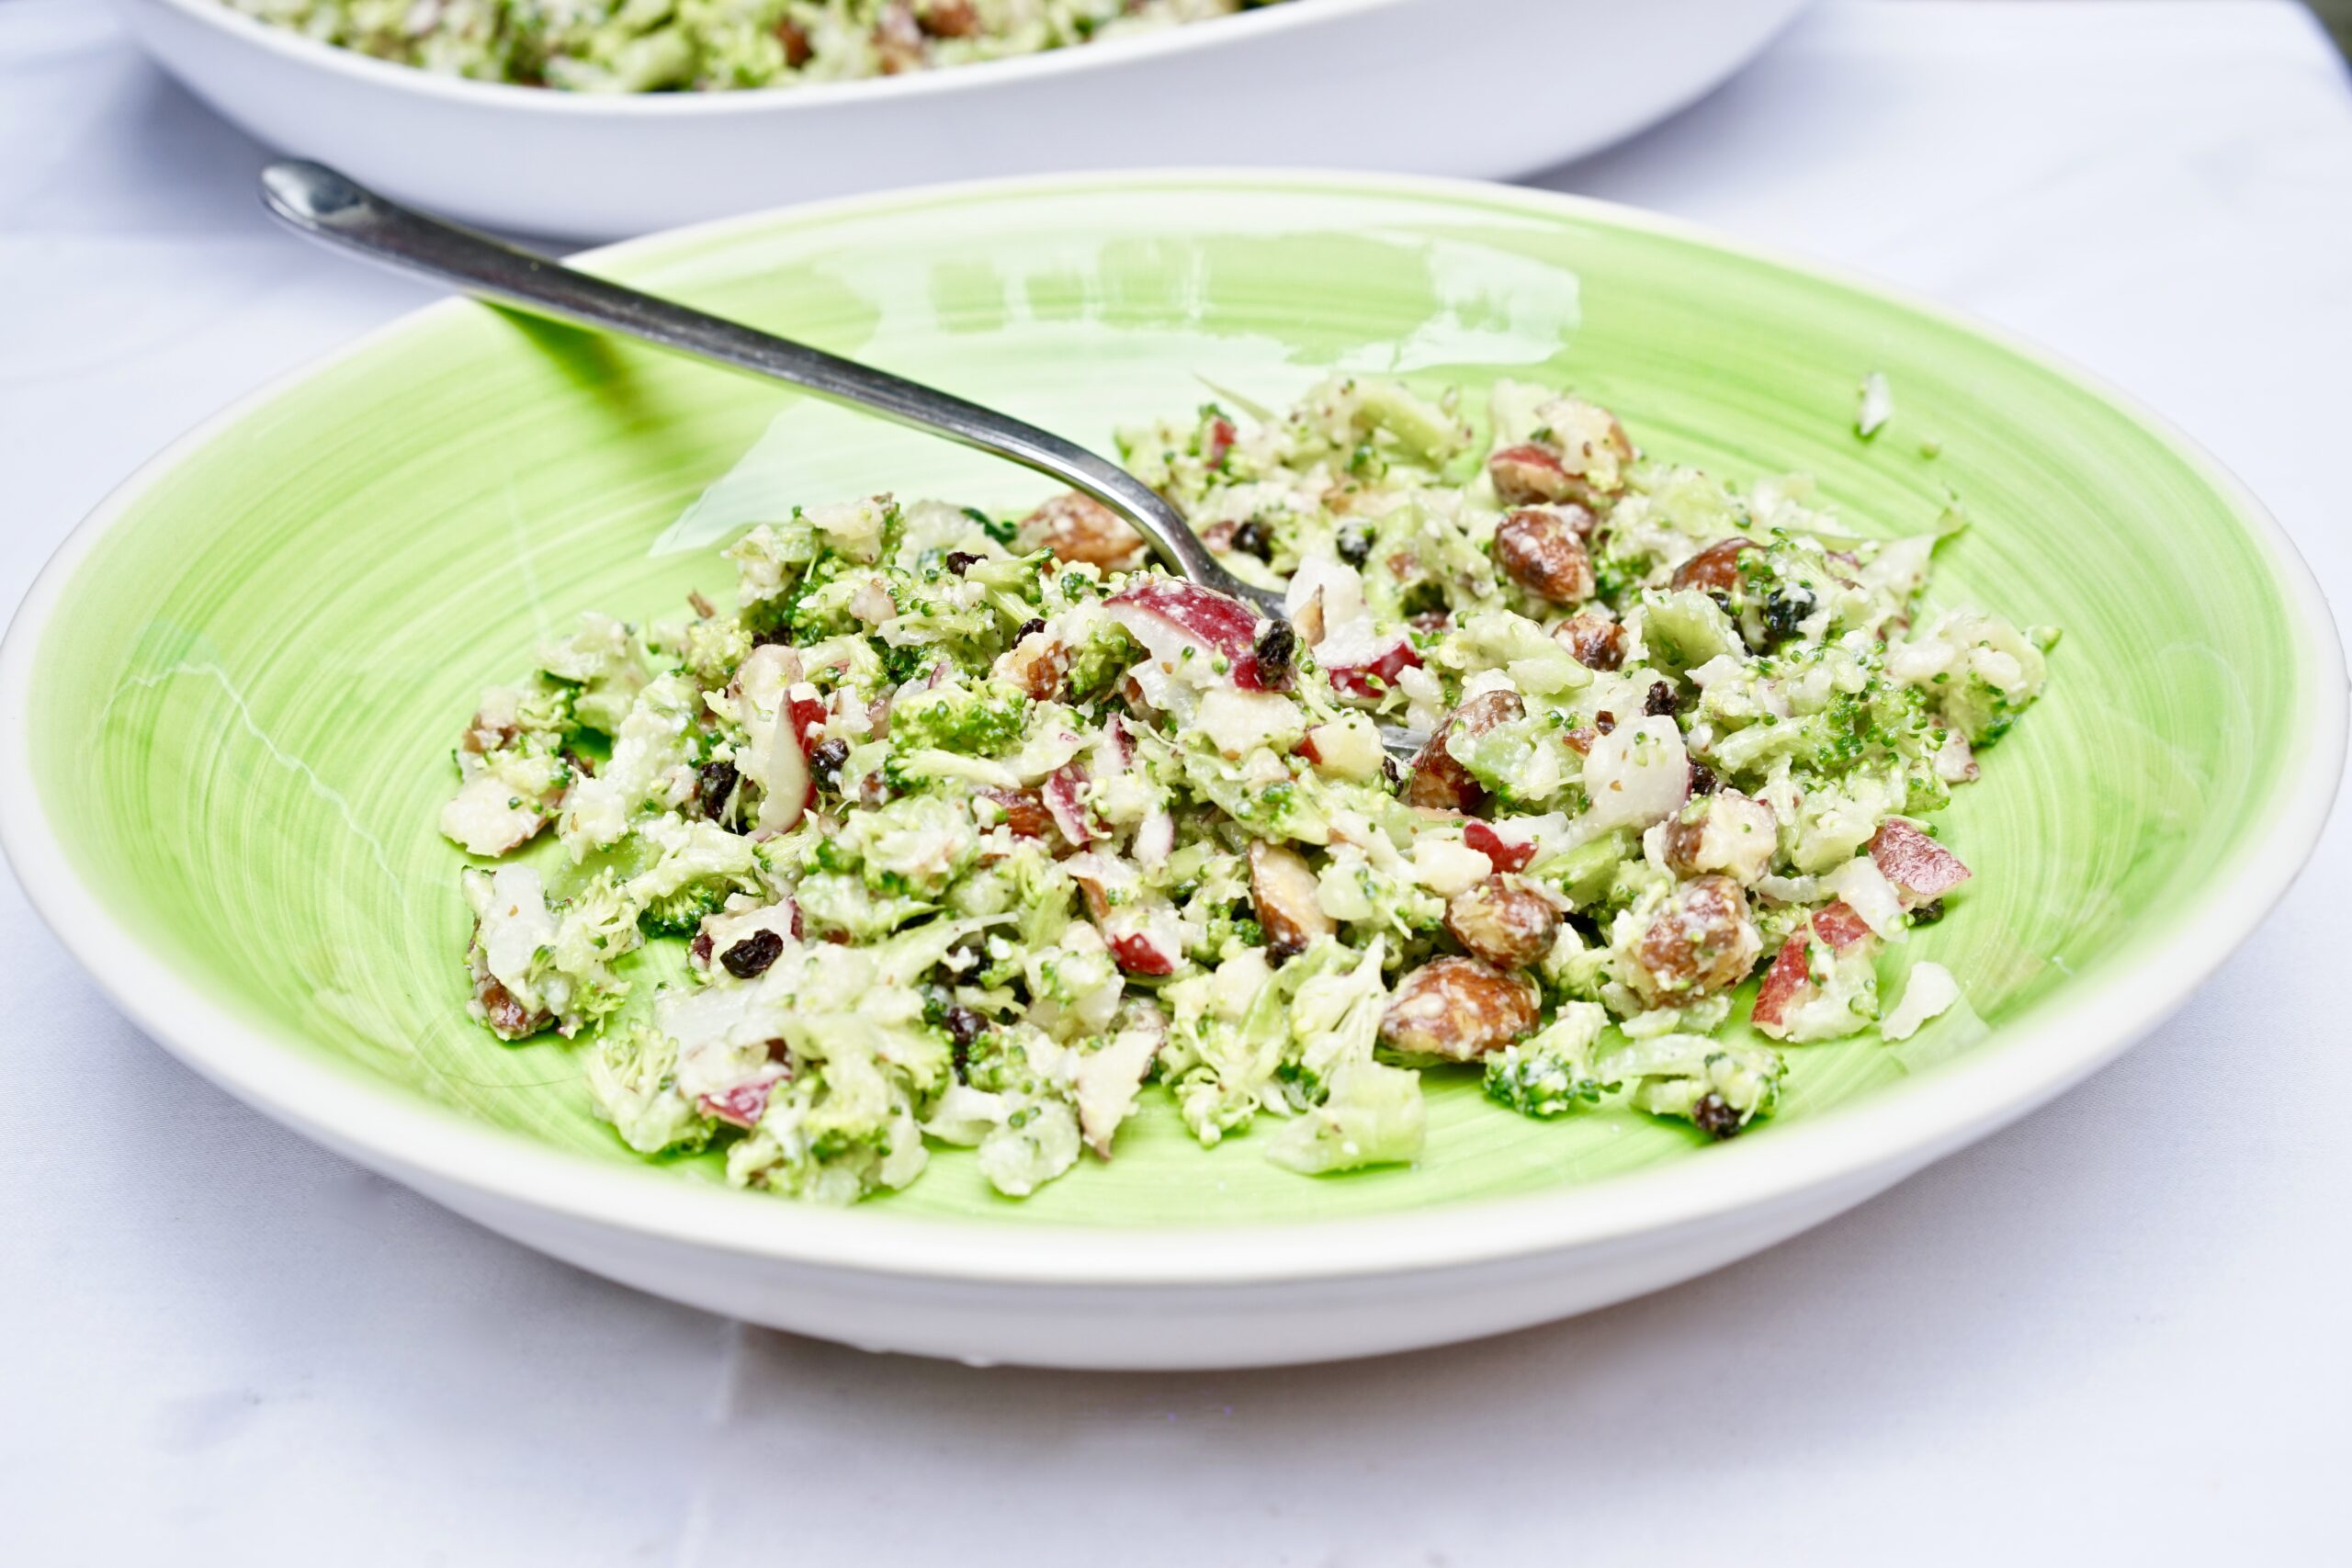 Riced Broccoli Salad with Almonds, Currants, and Gouda Dressing